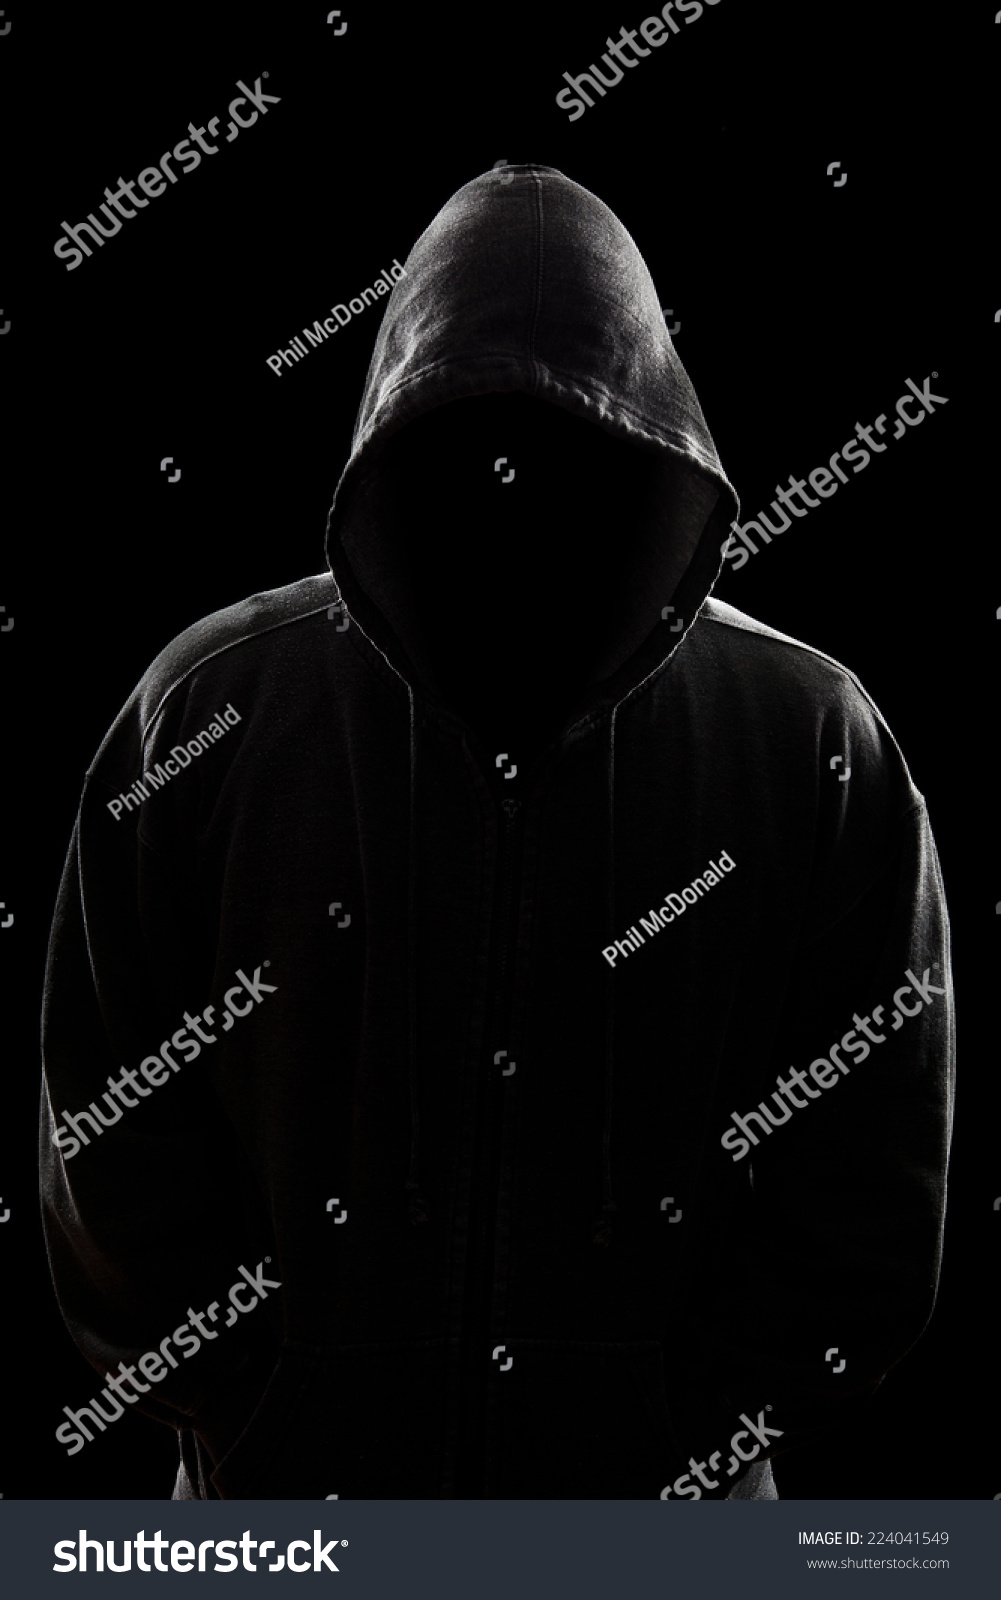 A Dark, Sinister Figure In A Hooded Sweatshirt. Stock ...